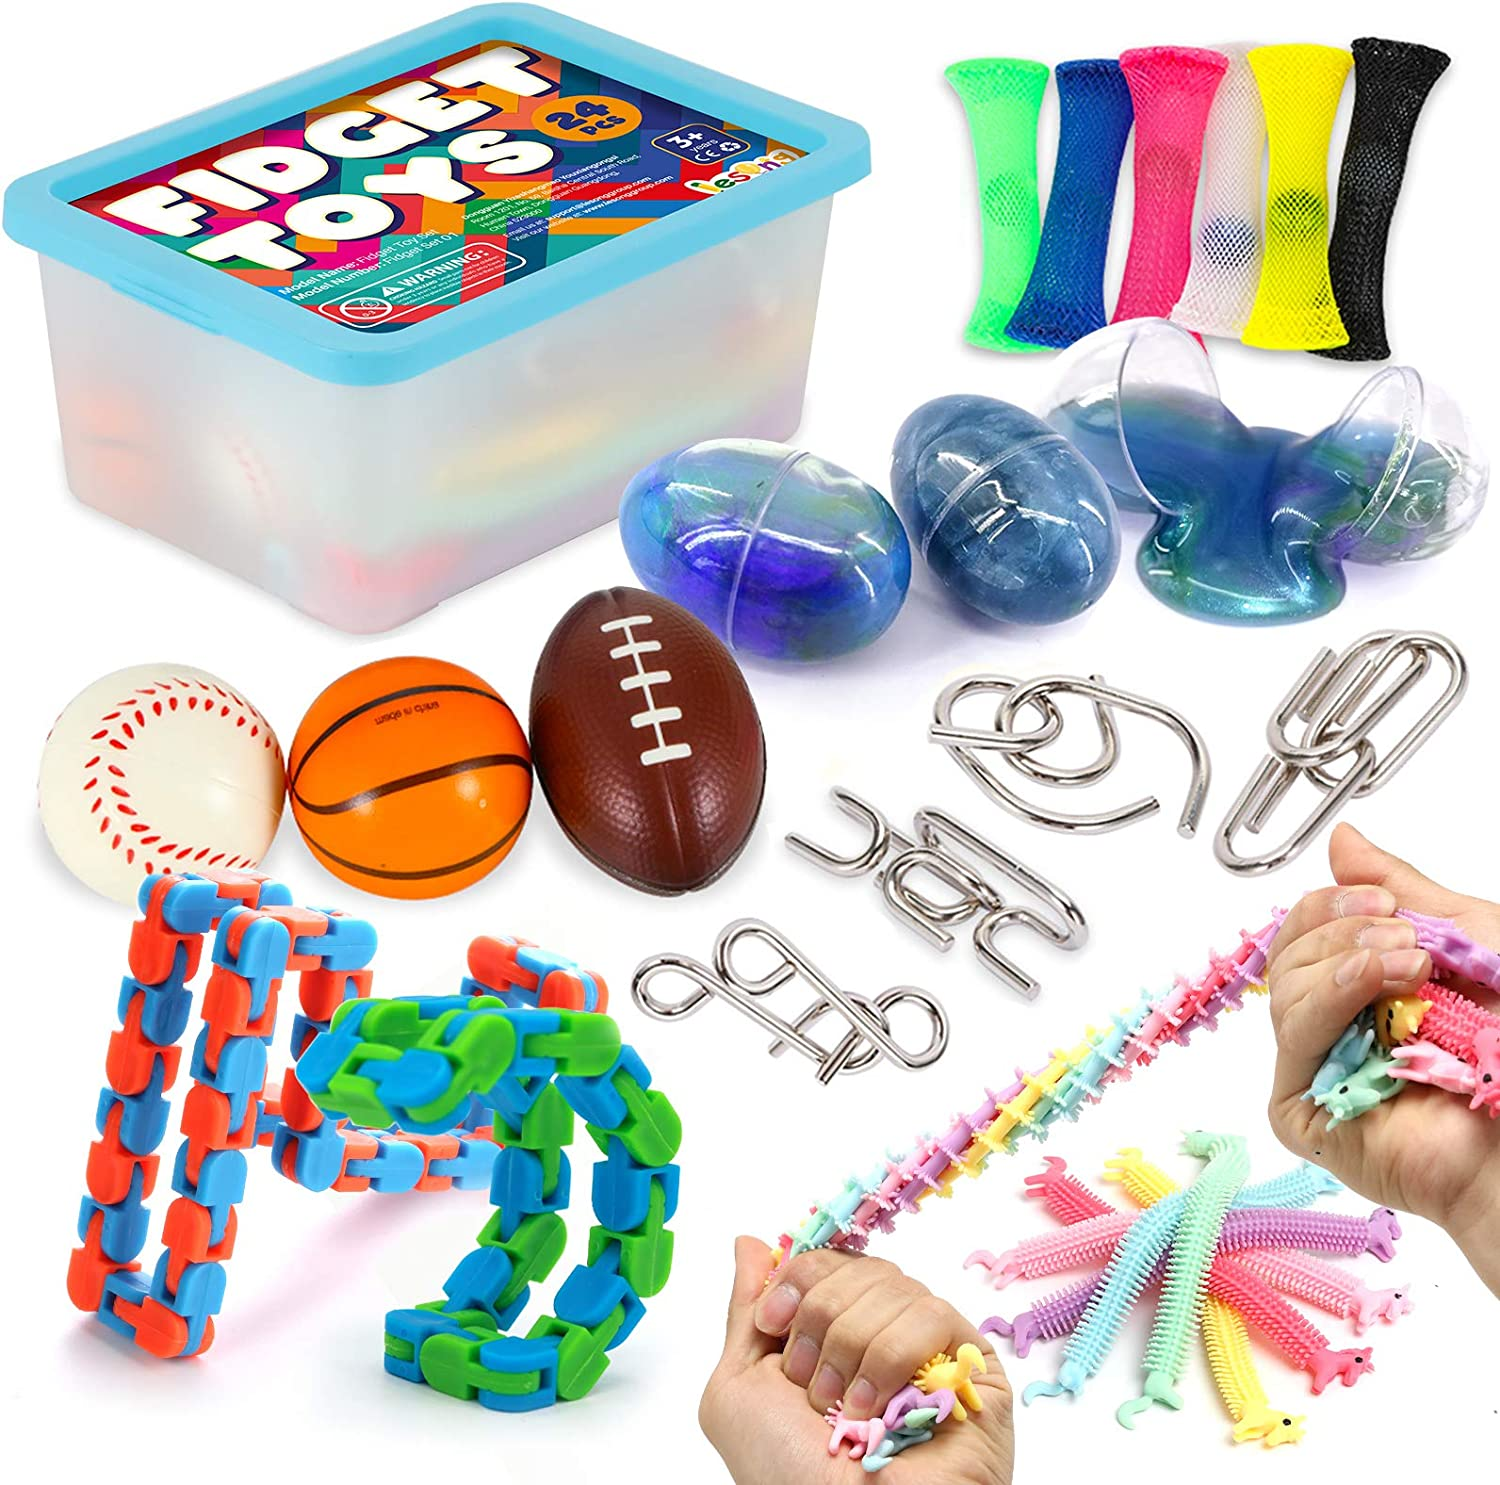 Fidgeting Game For ADHD ADD Autism with Metal Puzzle Slime Eggs Stress Ball Fidget Toys Set 24Pack Unicorn Stretchy String Sensory Relieves Stress /& Anxiety Squeeze Toys For Kids Teens and Adults